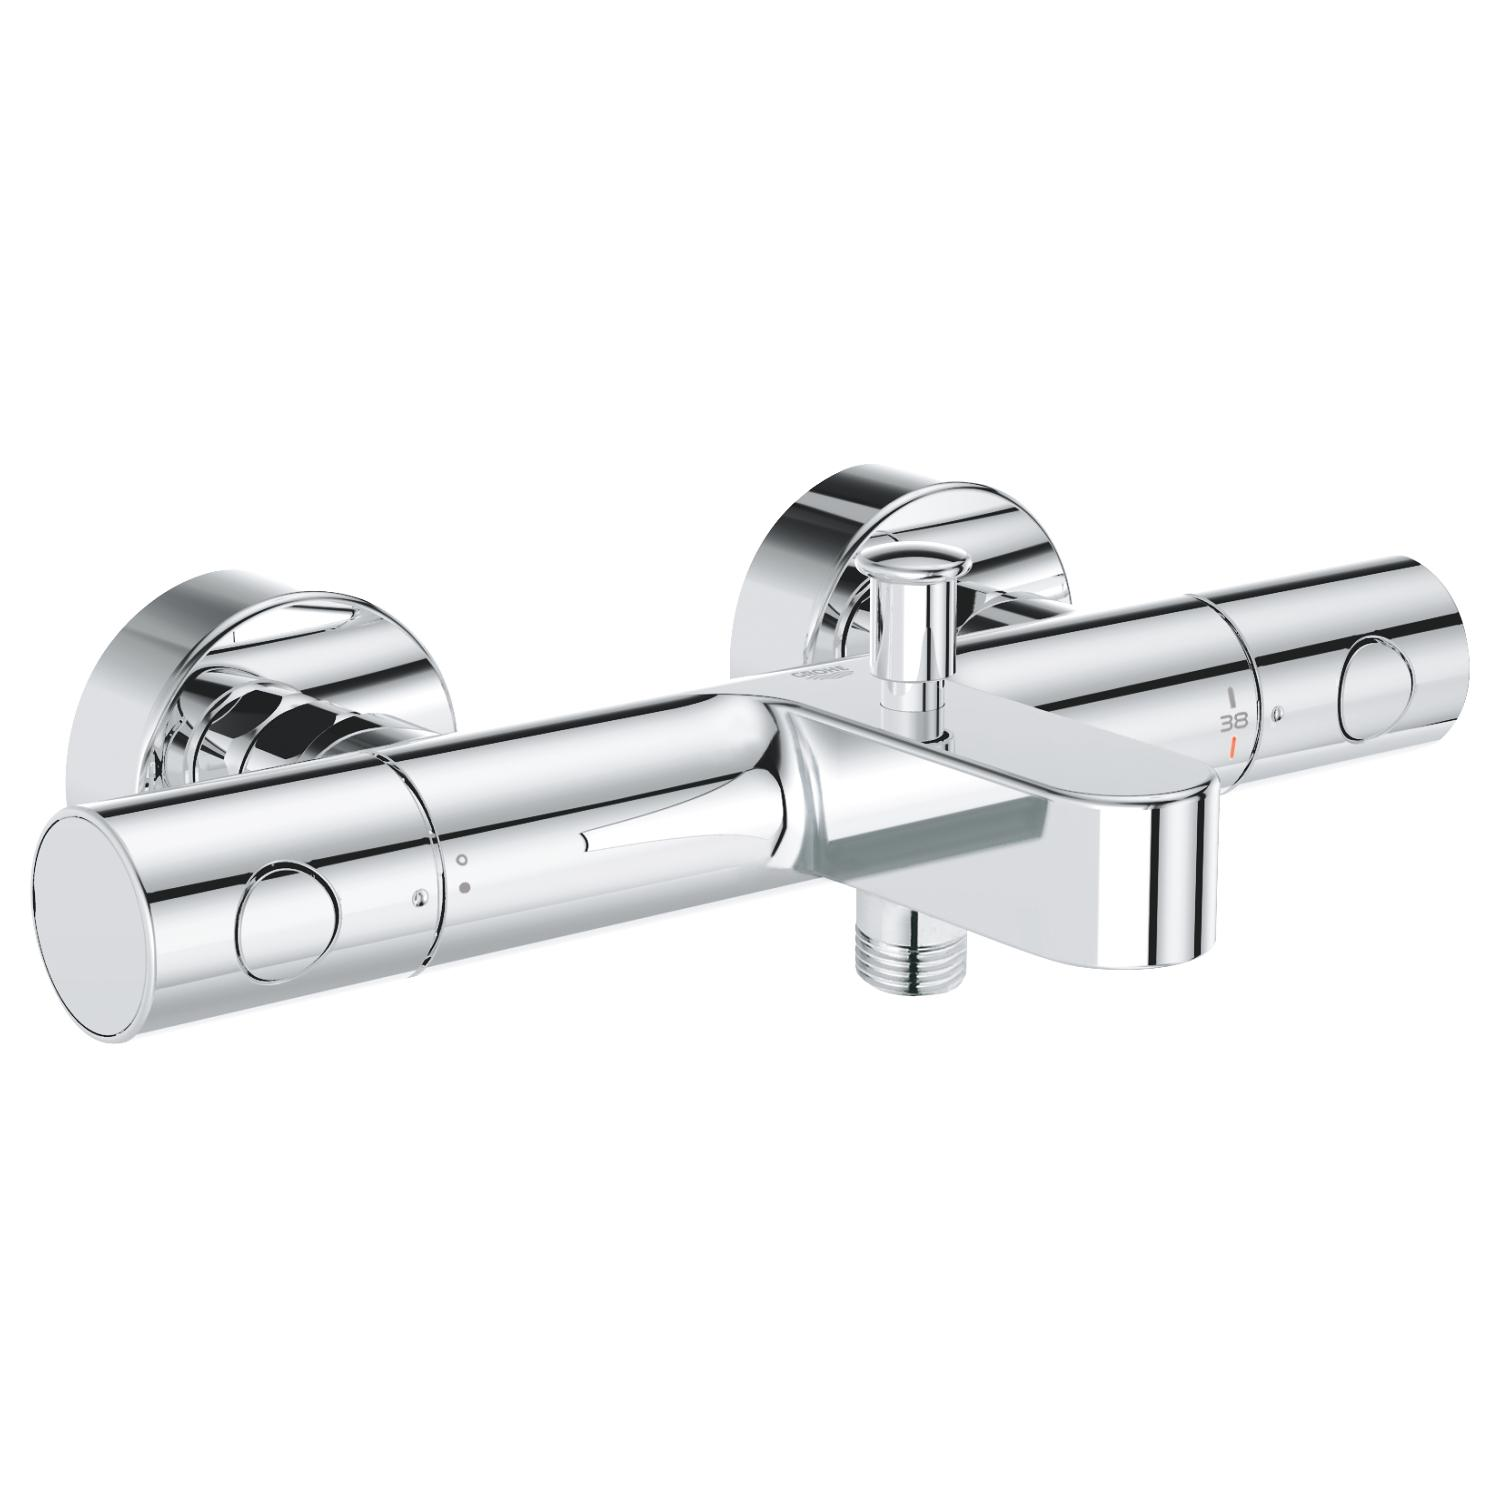 Grohtherm 1000 Cosmo.M 2-gr. badthermostaat chroom HoH150mm Grohe